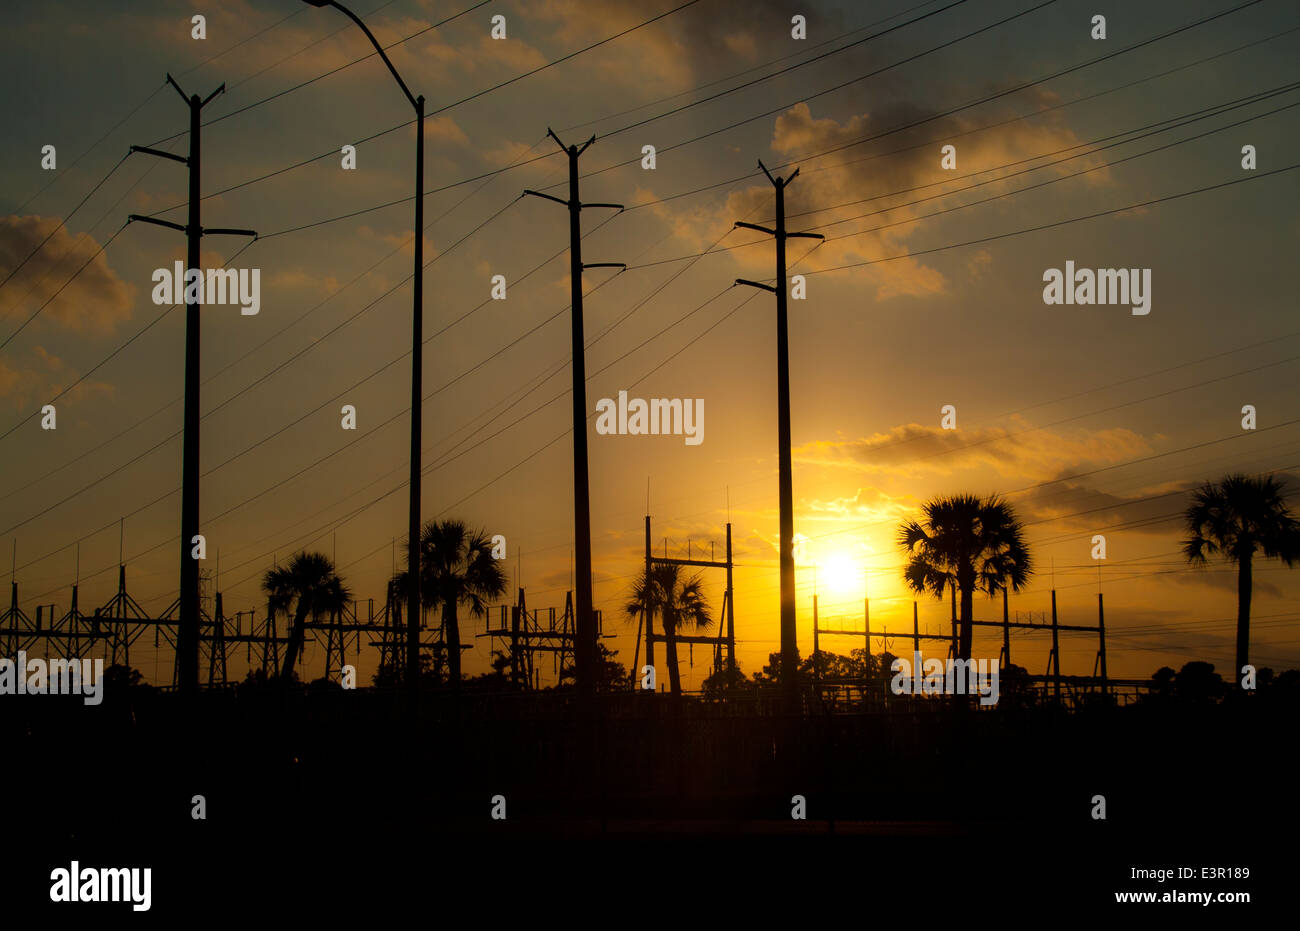 Telephone poles and powerlines at power plant in Sanford Florida - Stock Image